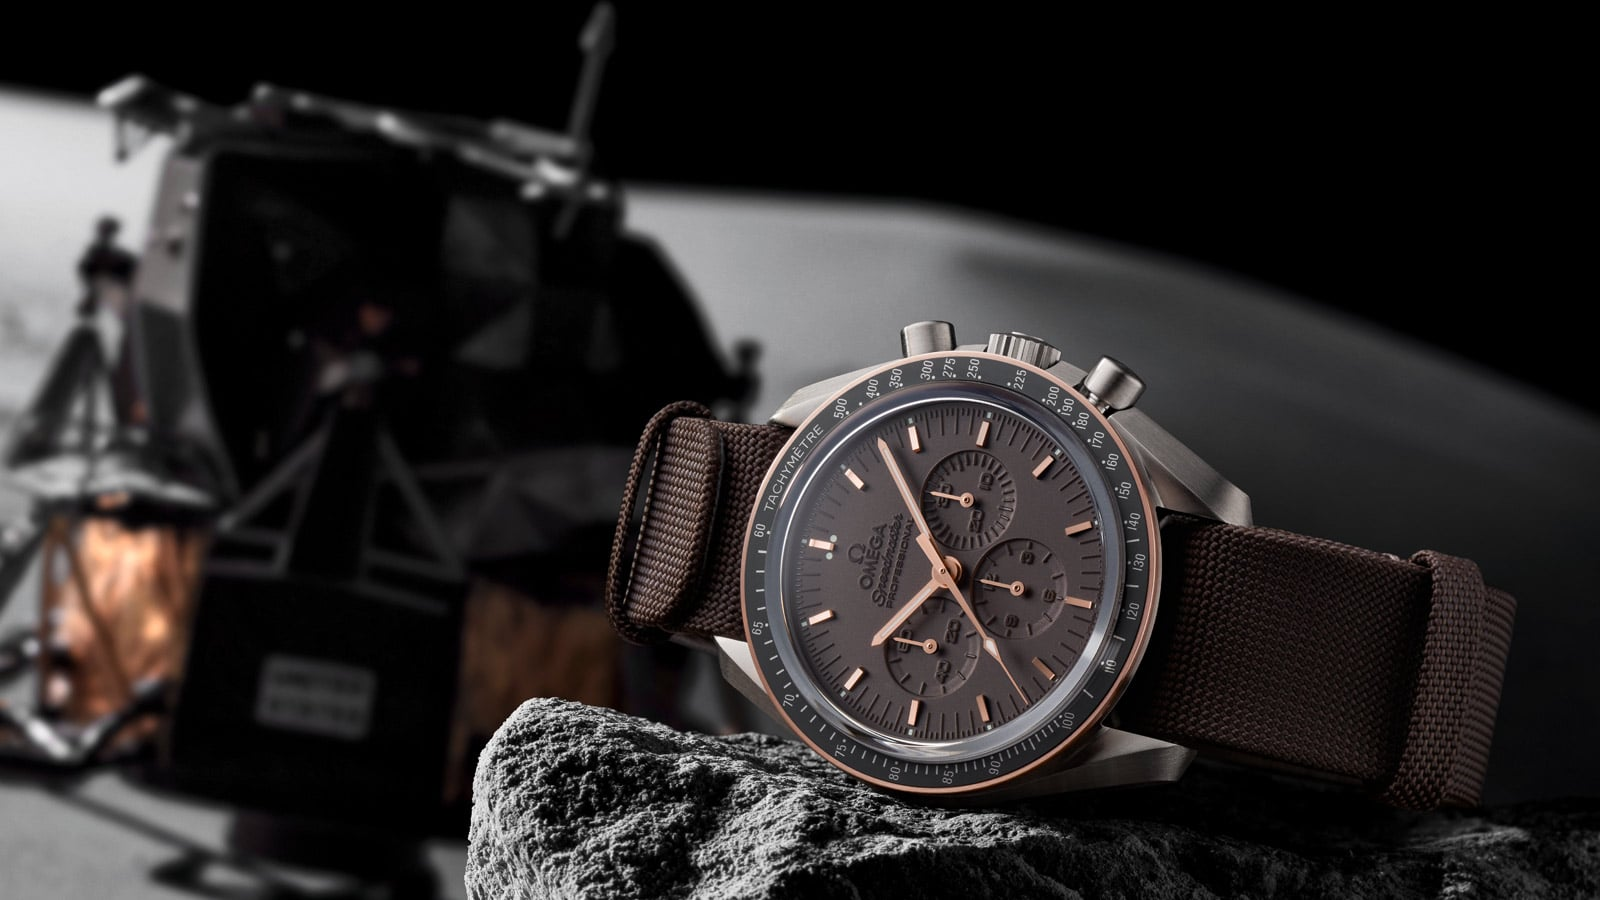 Speedmaster Moonwatch Apollo 11 45th Anniversary - Video - 2564